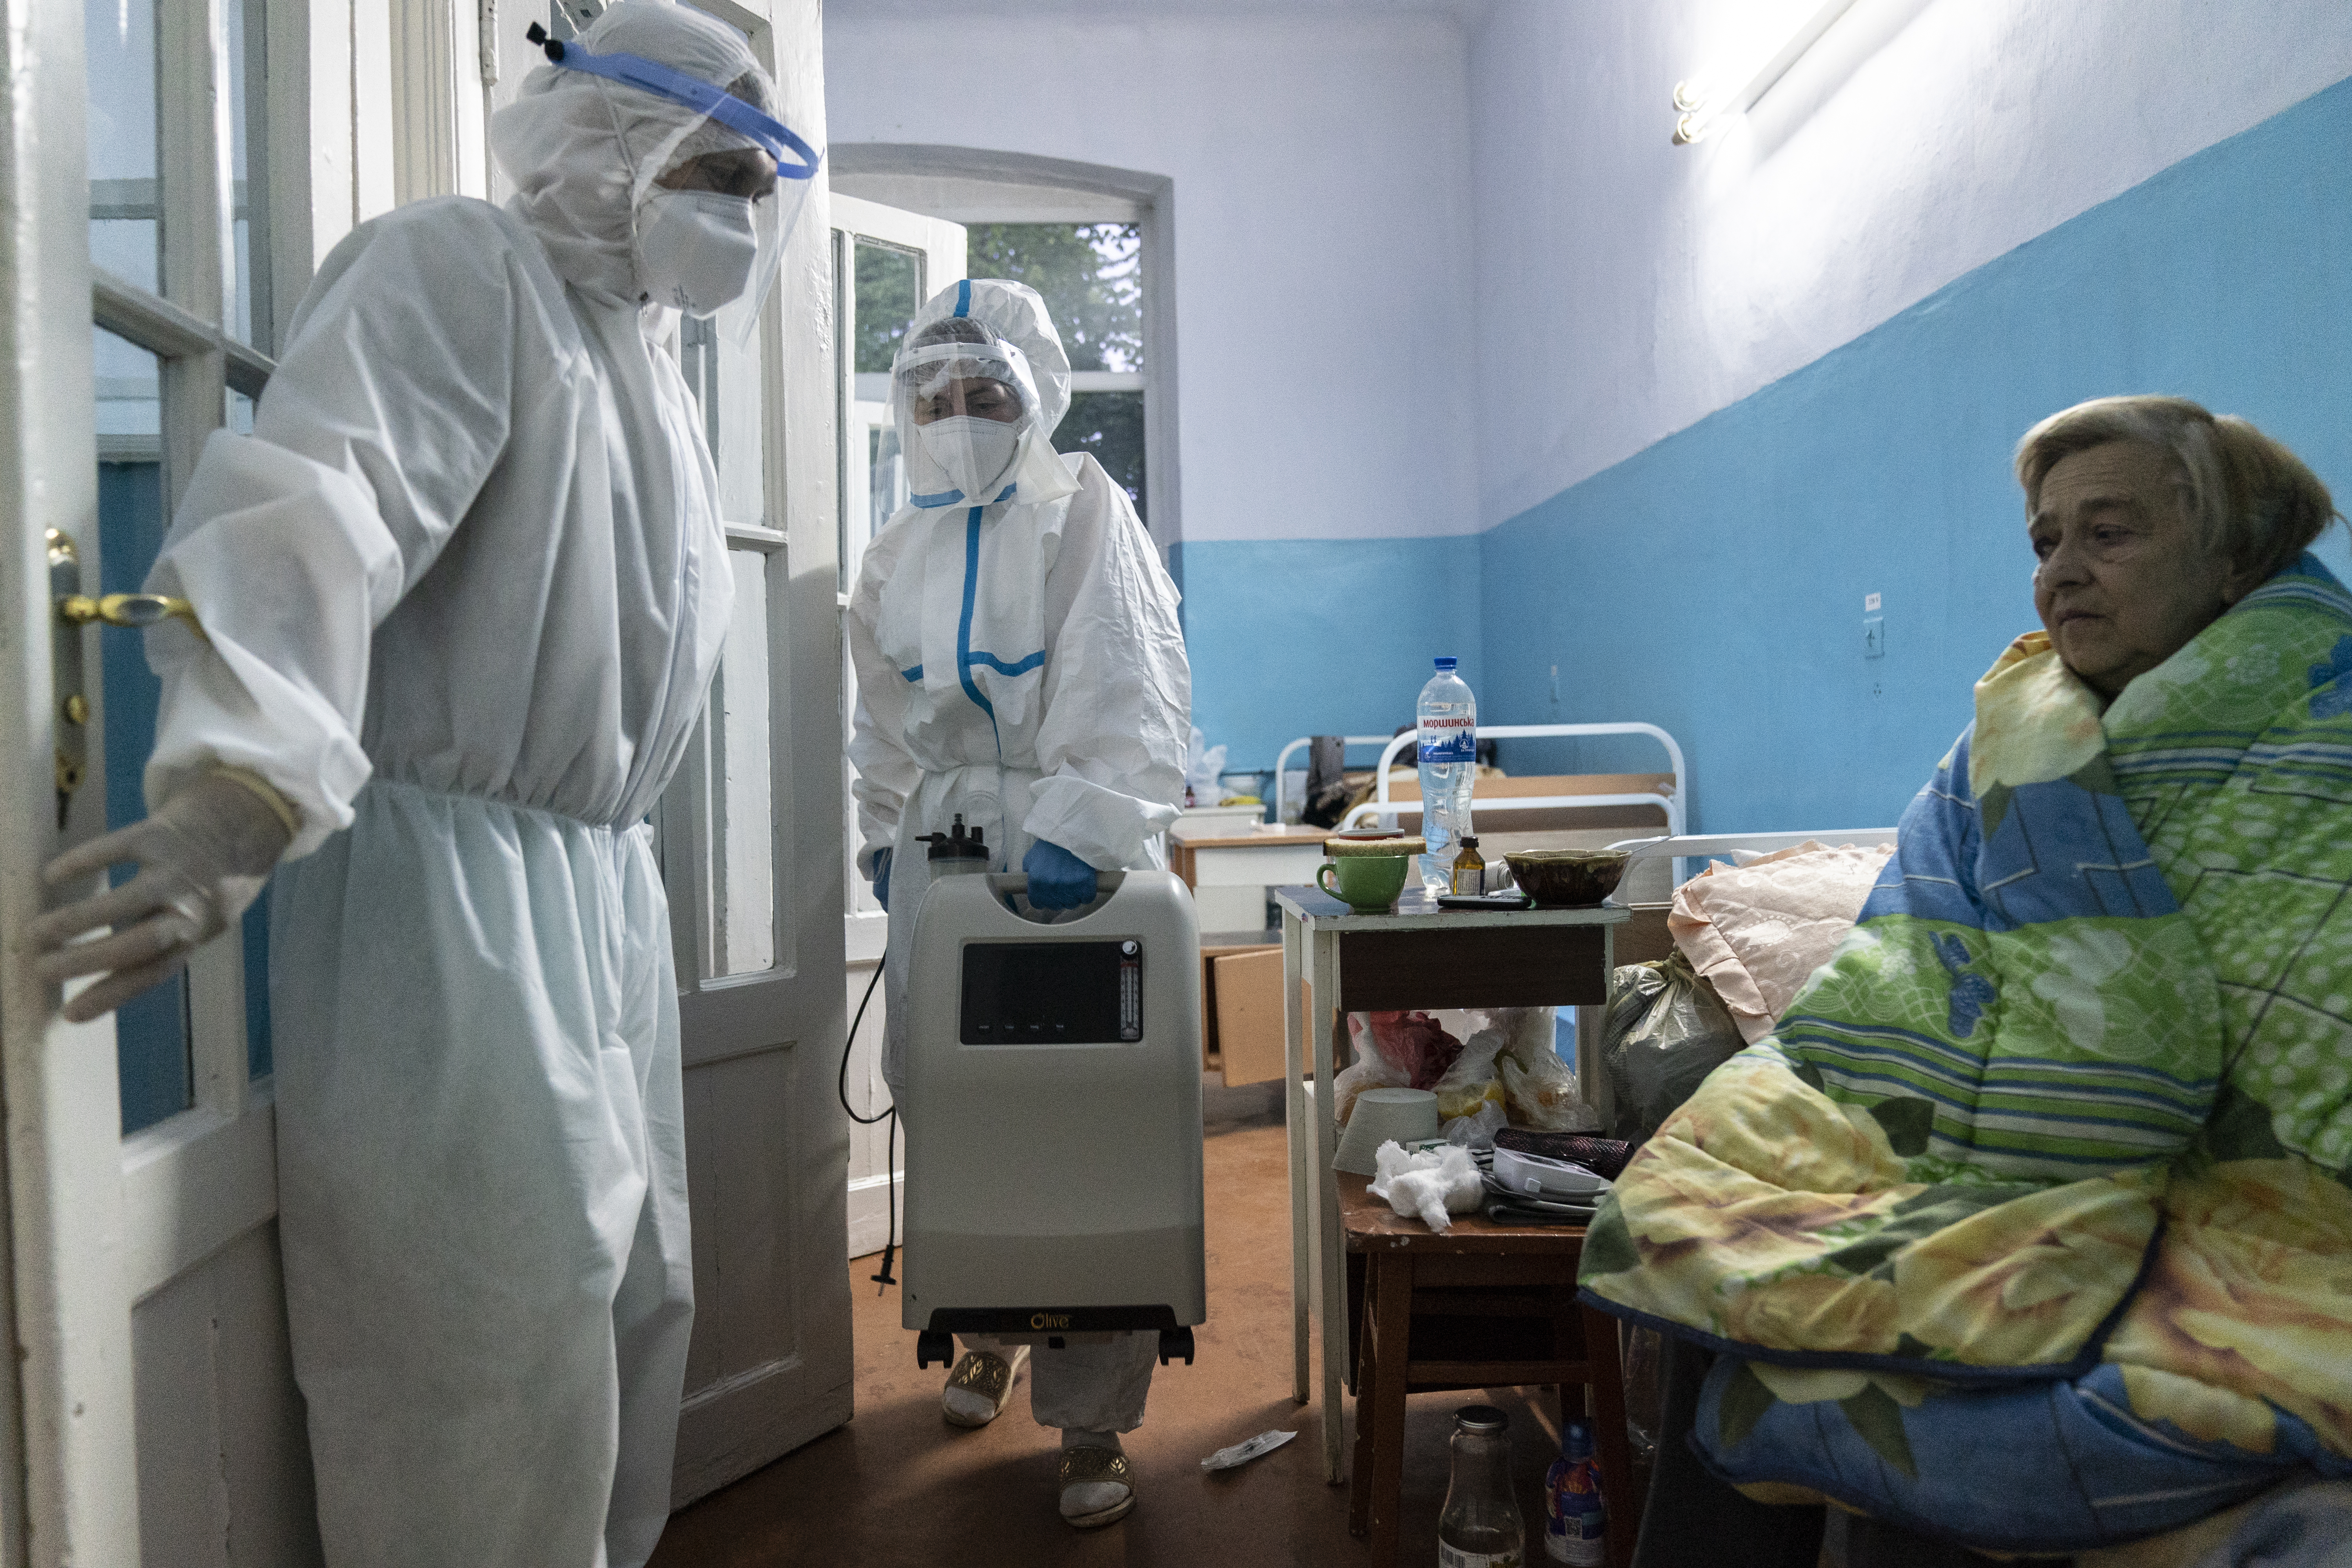 In this photo taken on May 9, 2020, a nurse, carries medical equipment to help a patient suspected of having the coronavirus infection at a the regional hospital in Chernivtsi, Ukraine.